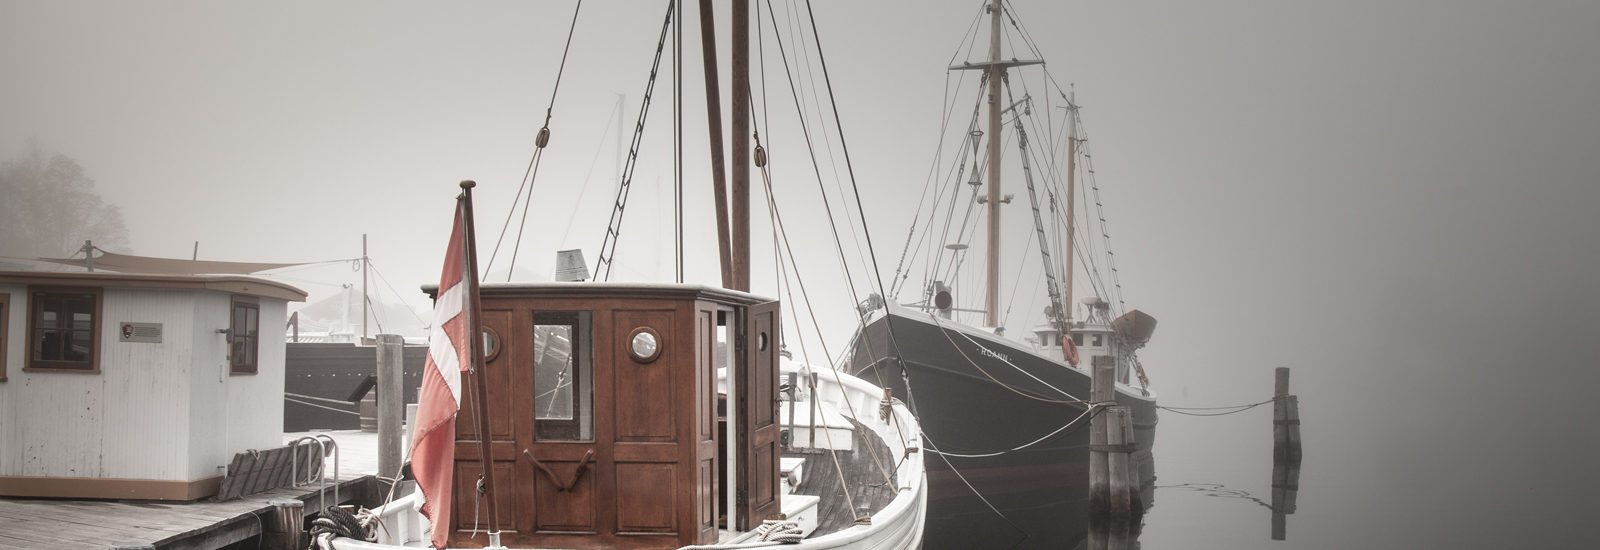 The Gerda III on view at Mystic Seaport